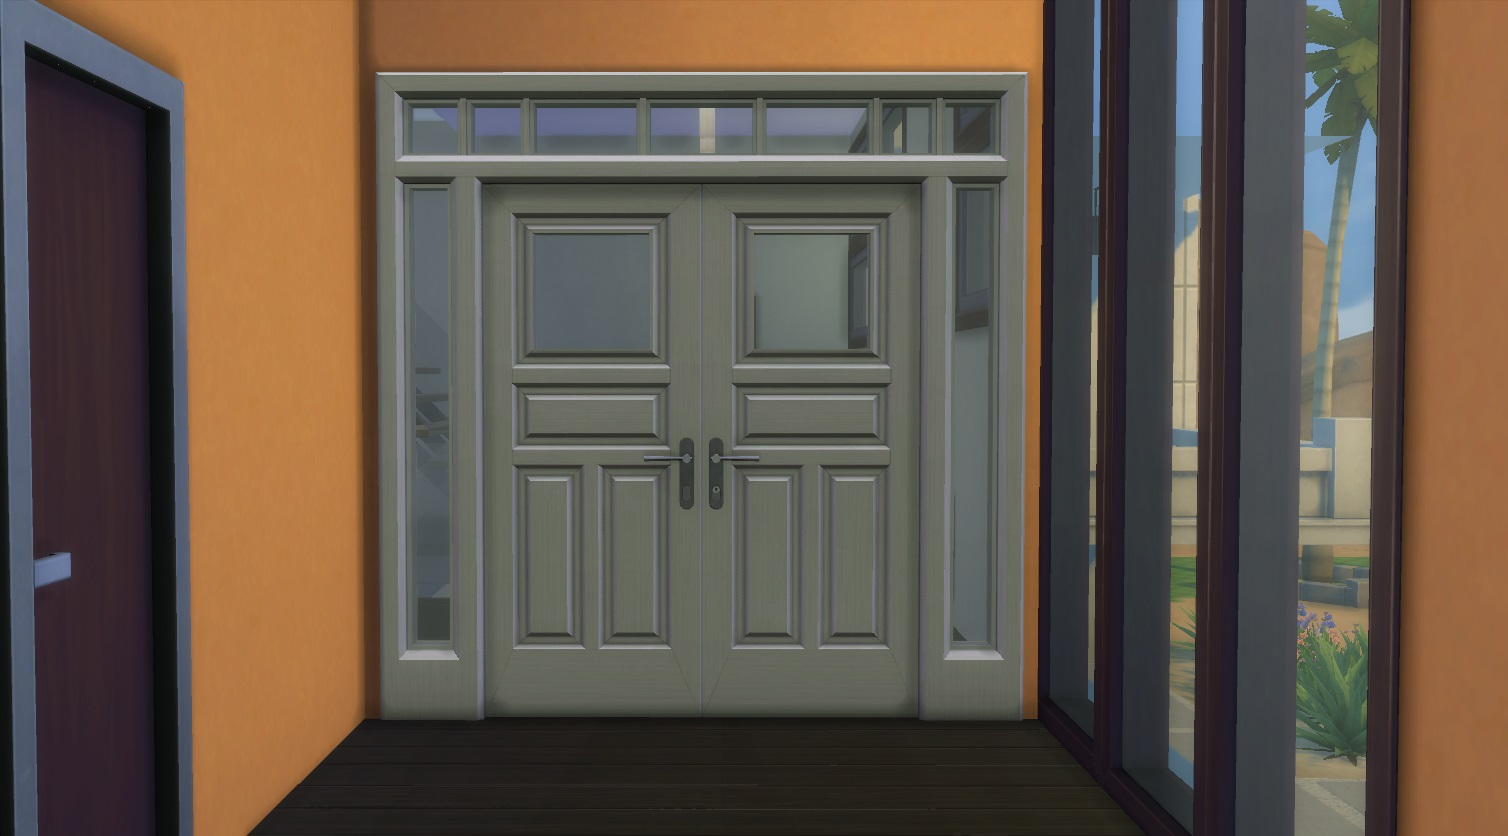 From The Sims 3, I Bring To You The Double Contemporary 3x1 Door Normally  Referred To As The Knock Knock Door